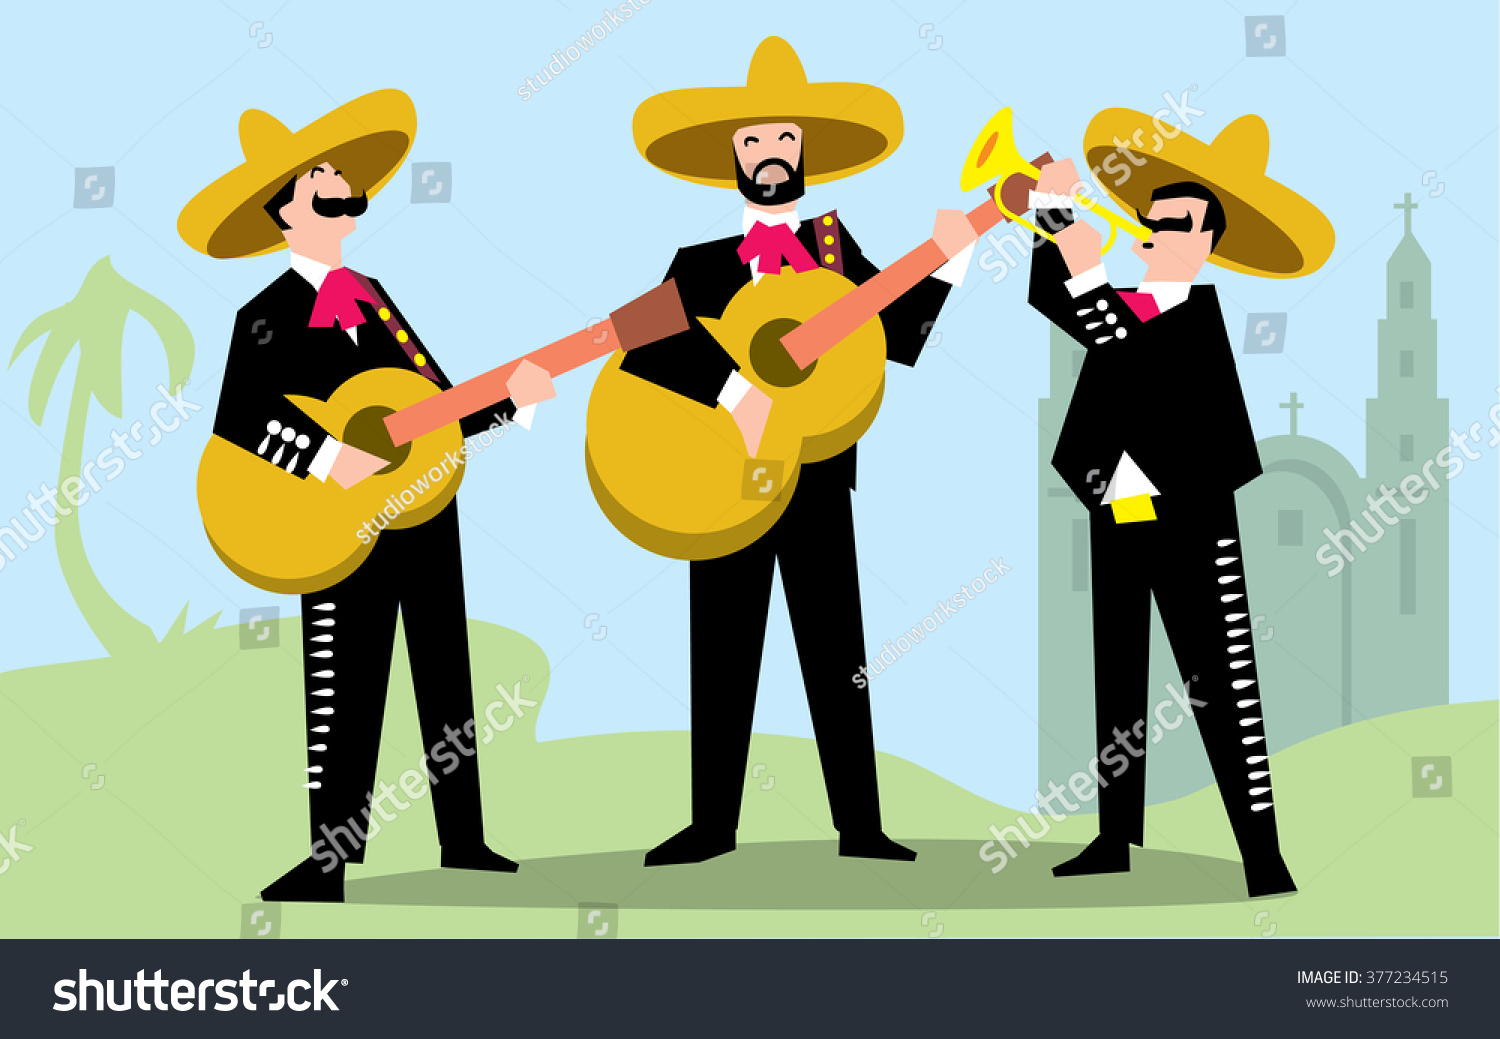 mariachi band in sombrero with guitar mexican music band music group in traditional costumes. Black Bedroom Furniture Sets. Home Design Ideas